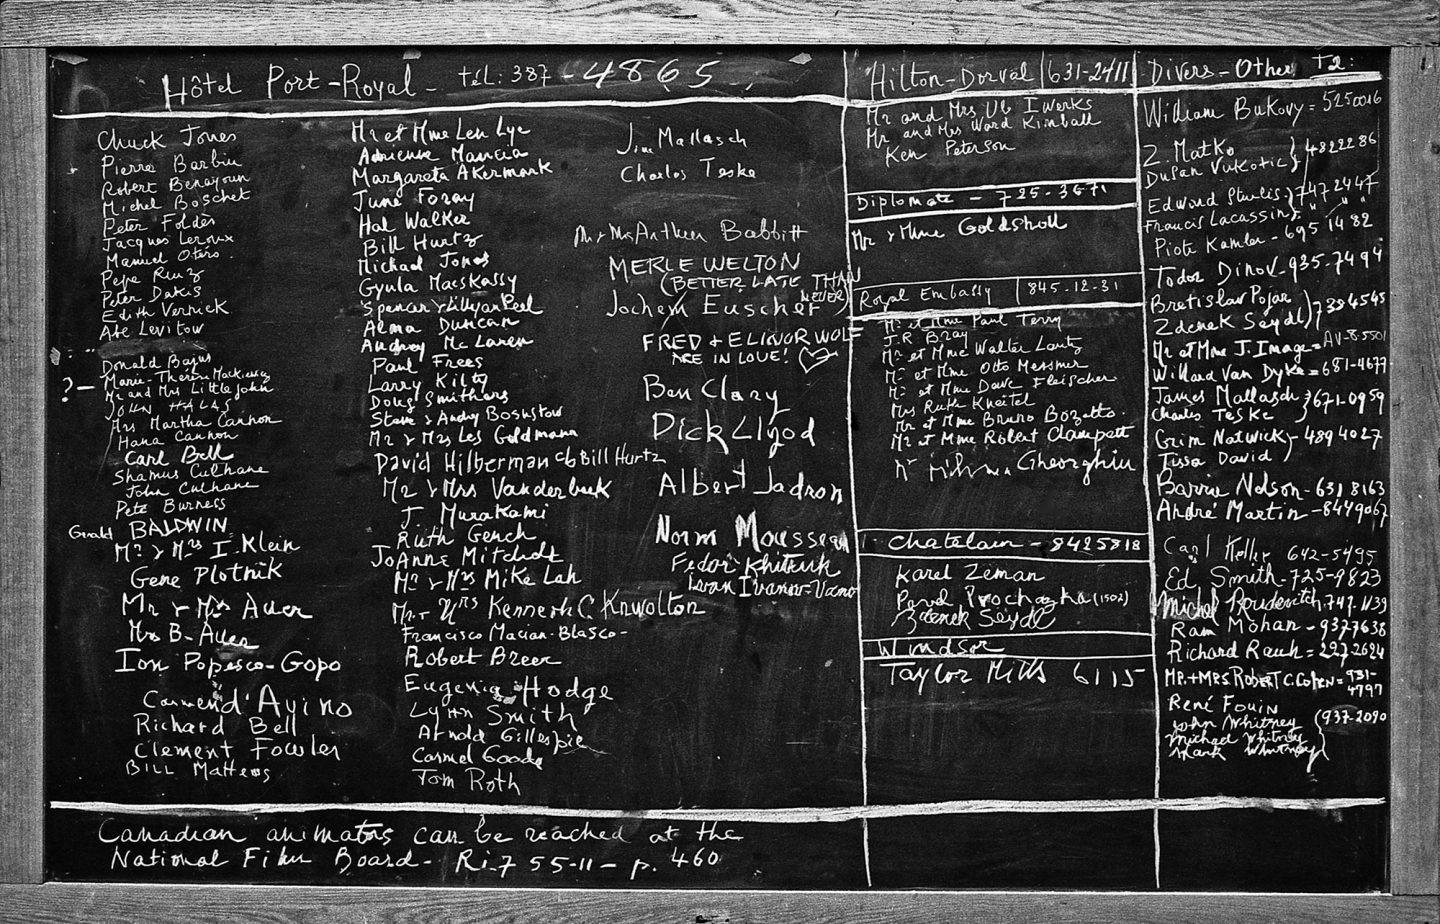 A photo of the chalkboard that shows the guests' names and hotels at which they were staying. (Photo: Bruno Massenet/The Bruno Massenet fonds of The Cinémathèque québécoise)